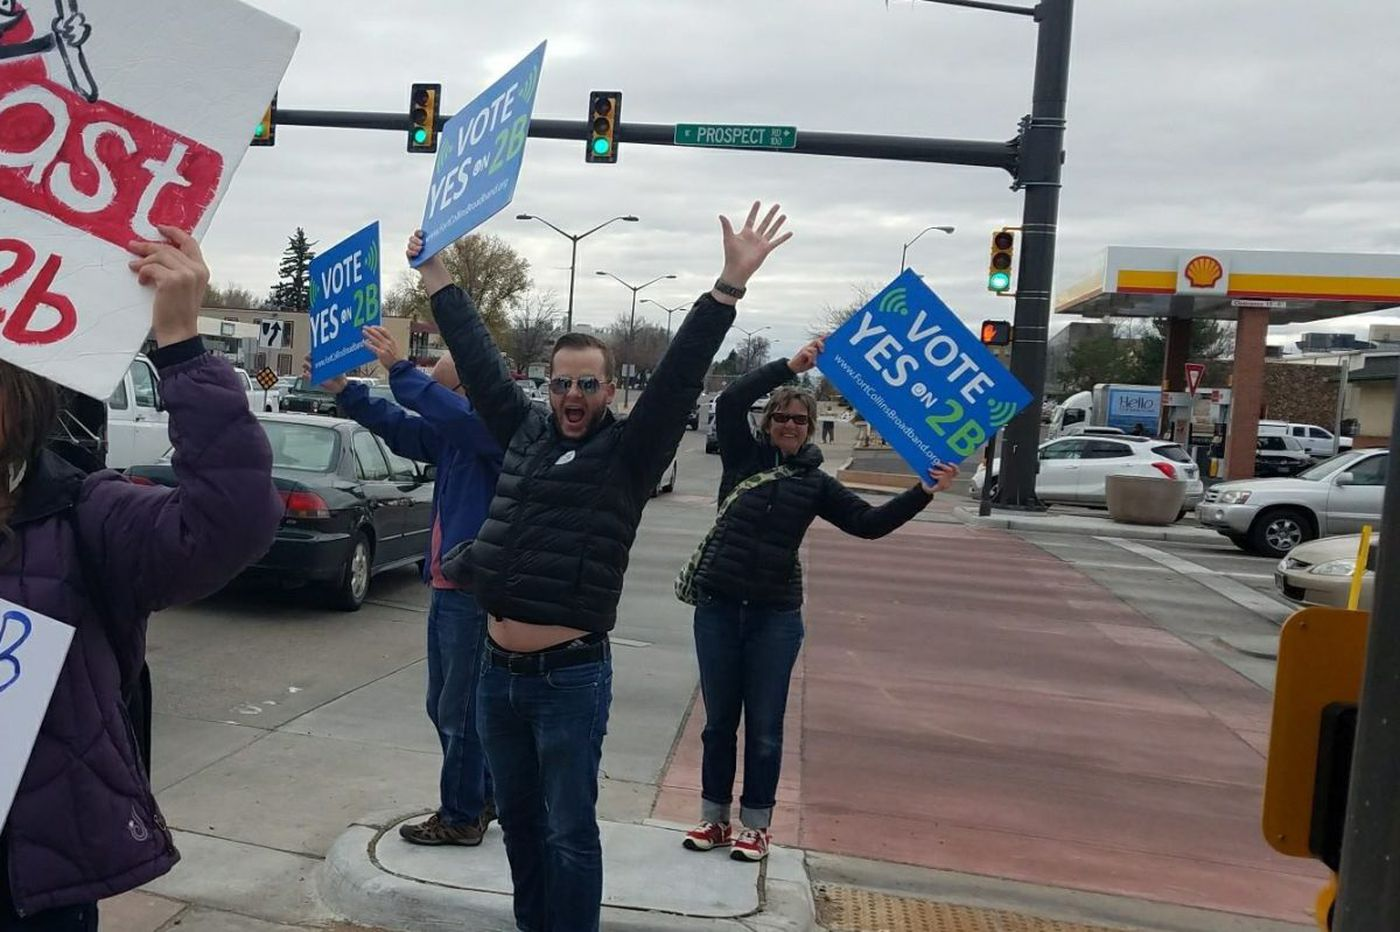 Comcast, CenturyLink smacked down in Colo.: Voters approve city-owned broadband network